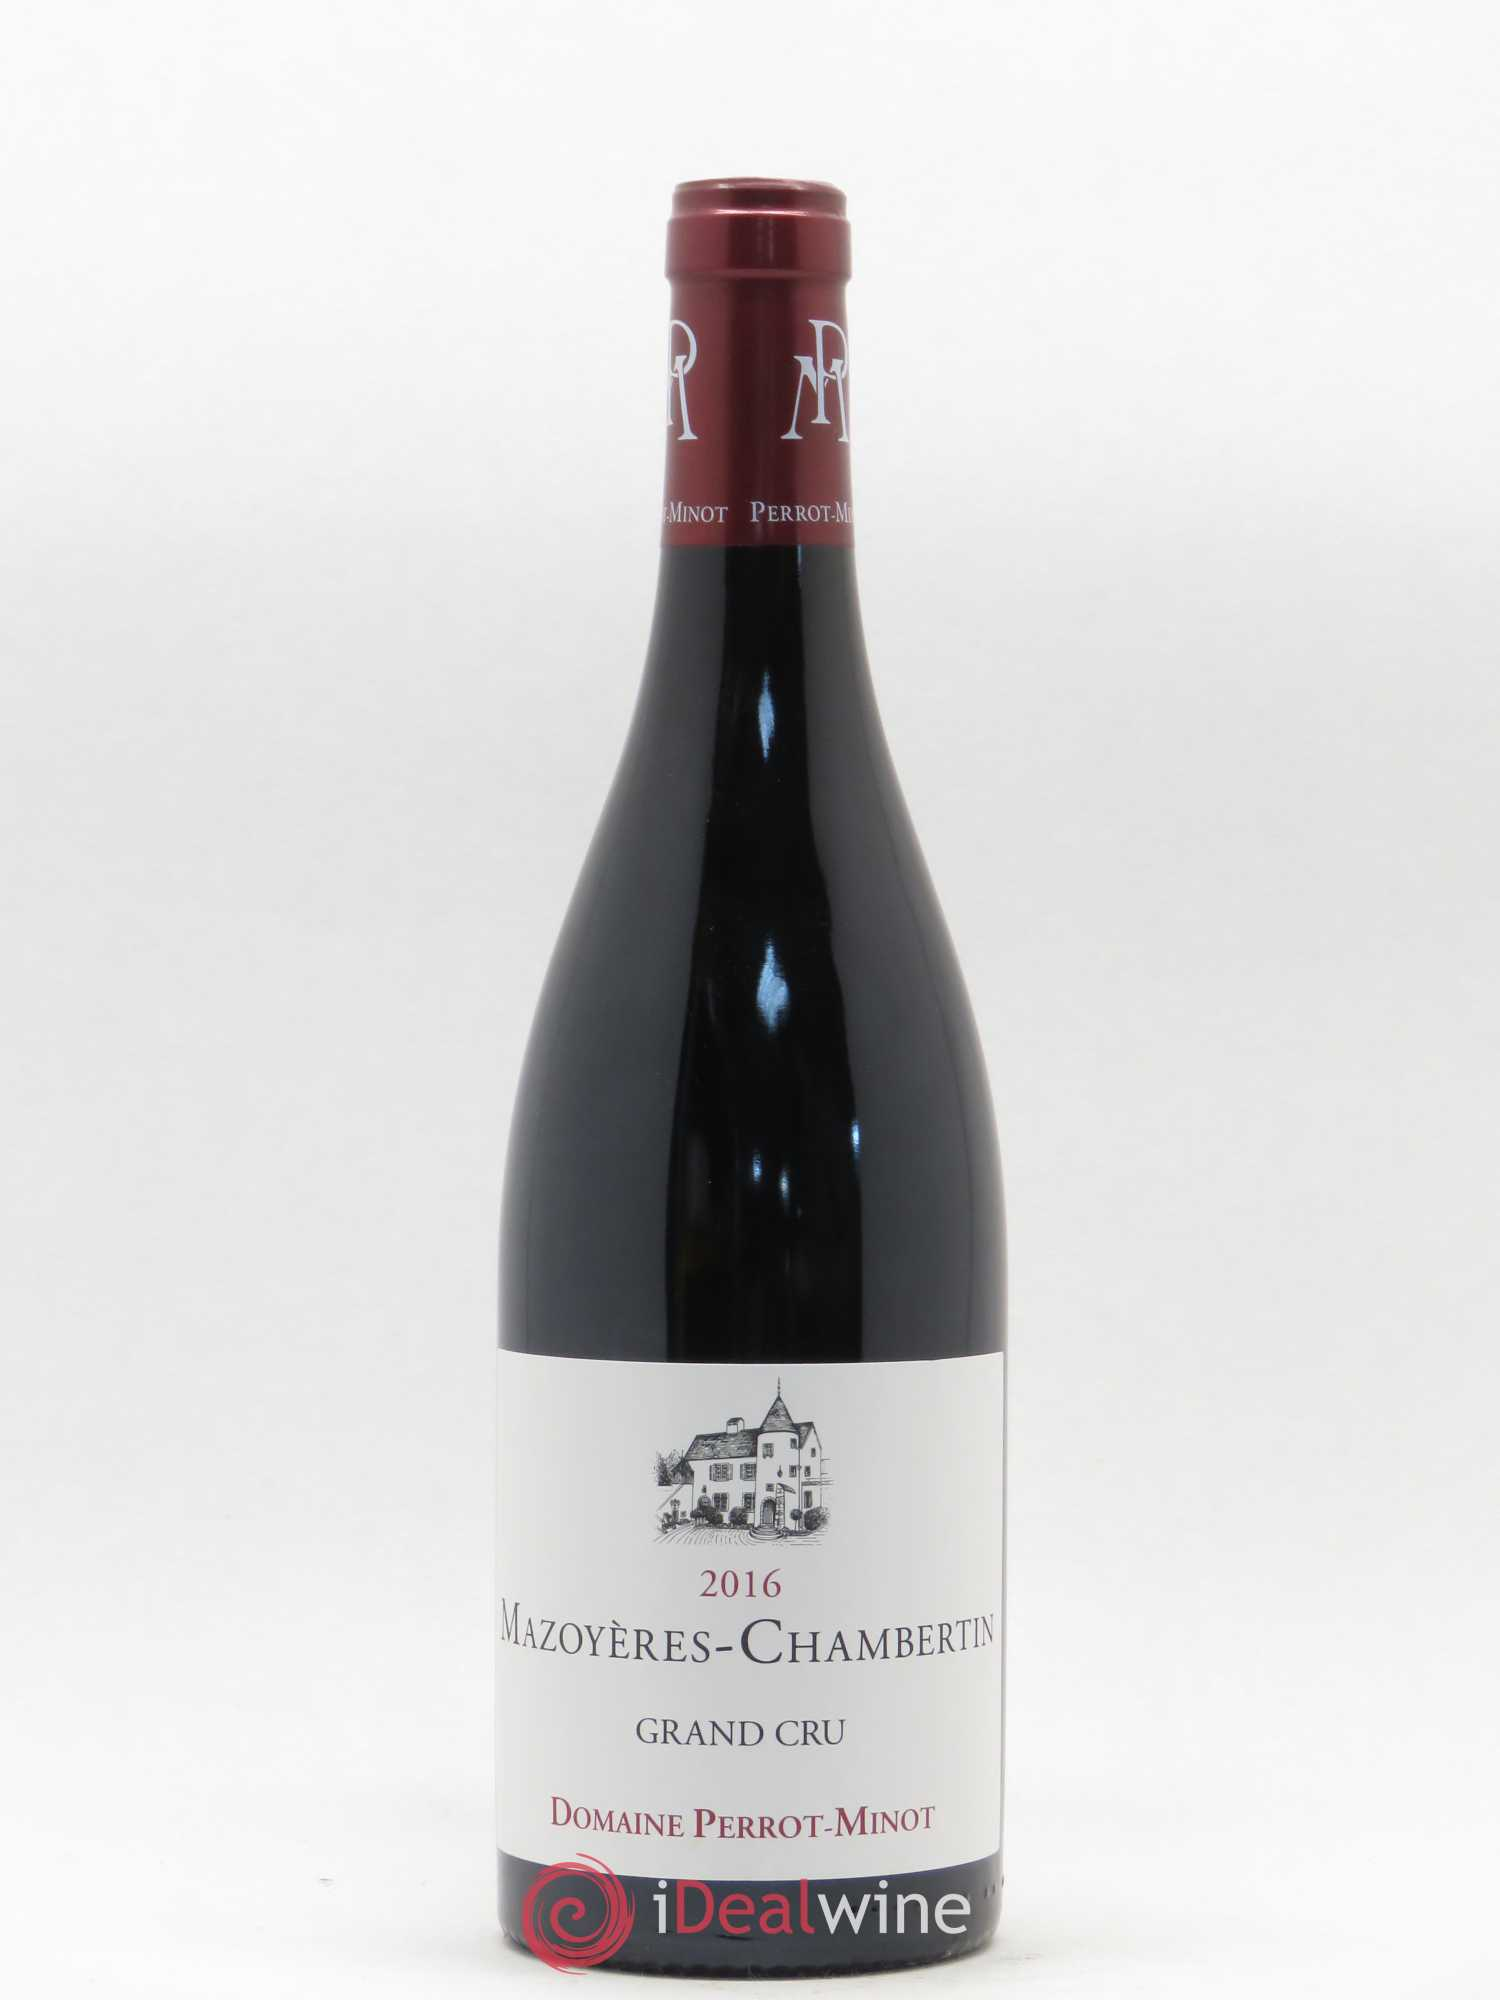 Mazoyères-Chambertin Grand Cru Perrot-Minot Vieilles Vignes  2016 - Lot of 1 Bottle